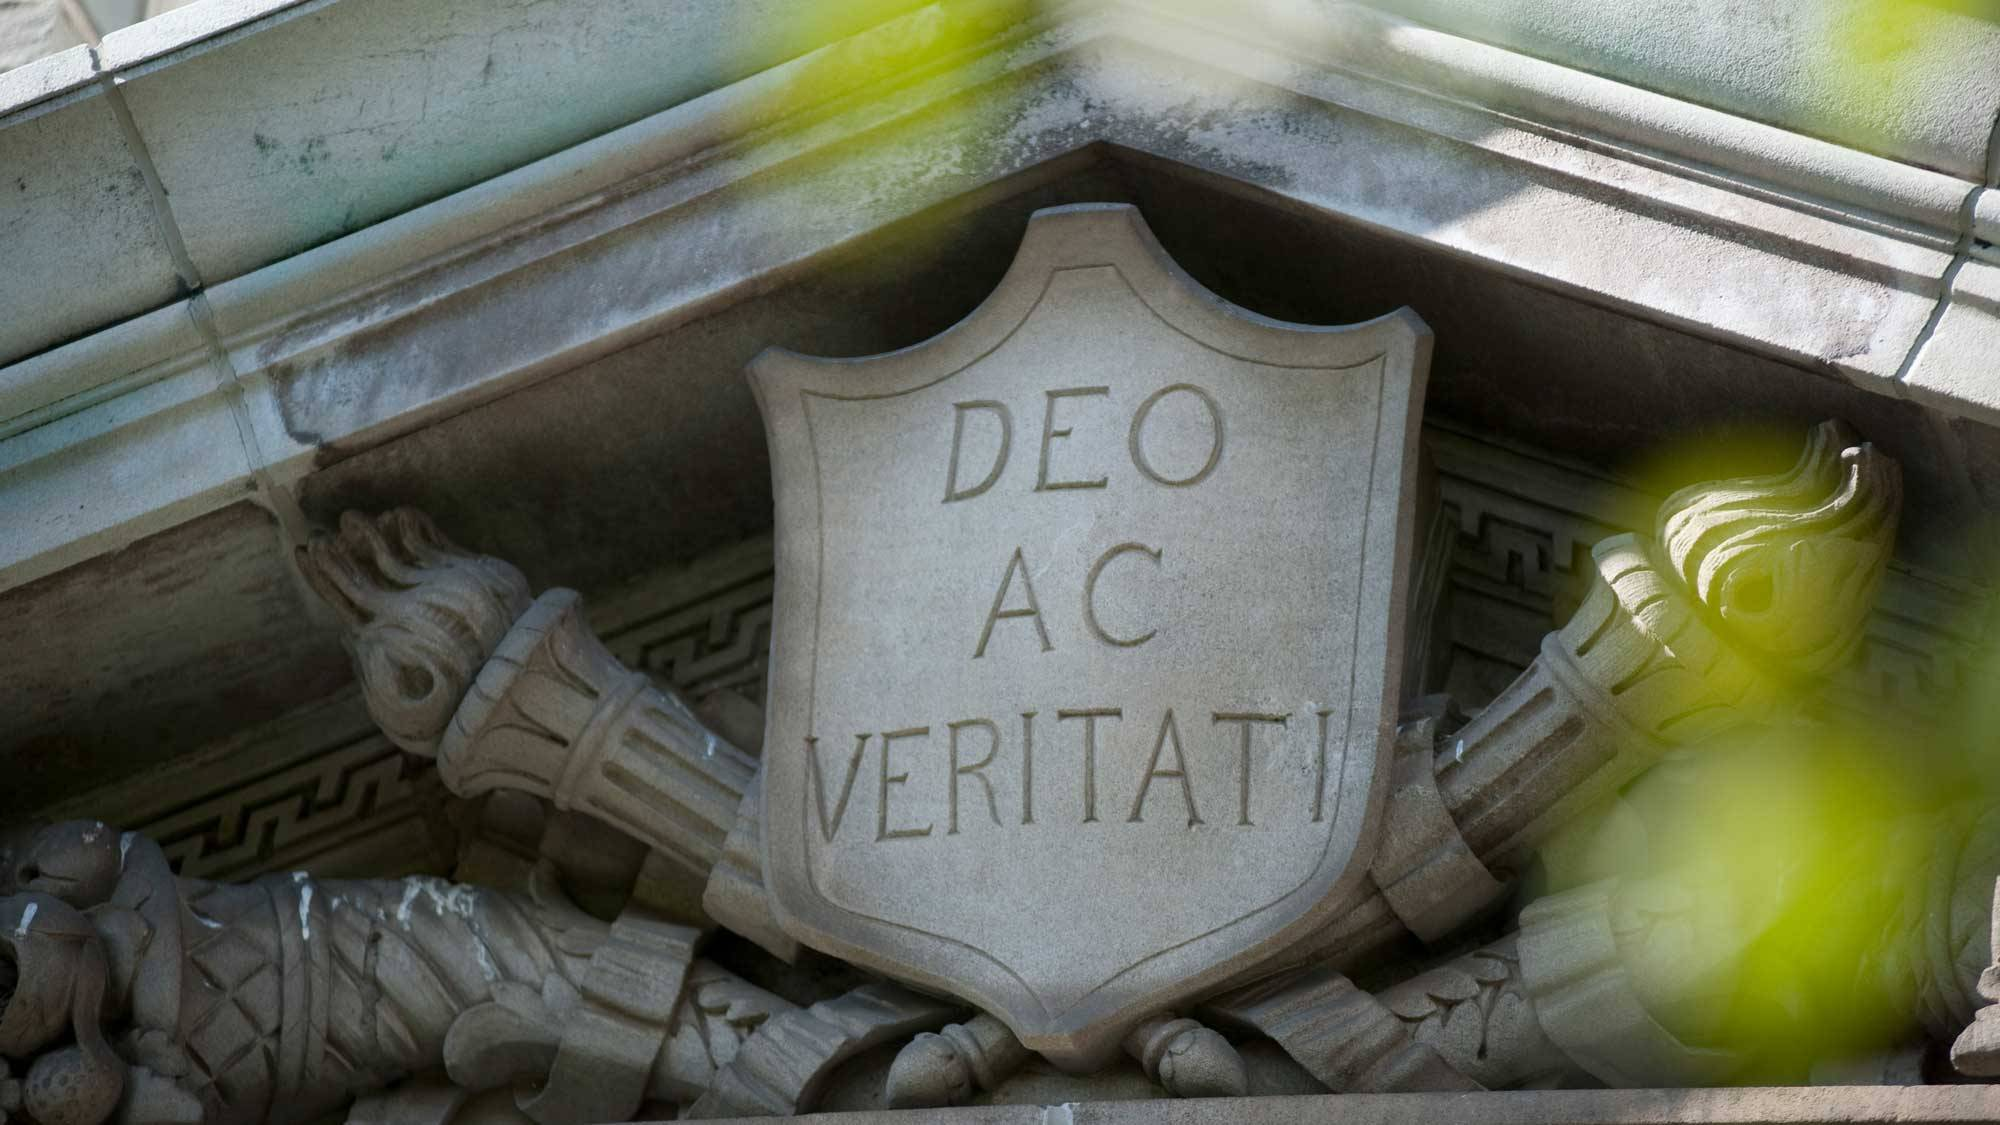 deo ac veritati carved into stone shield